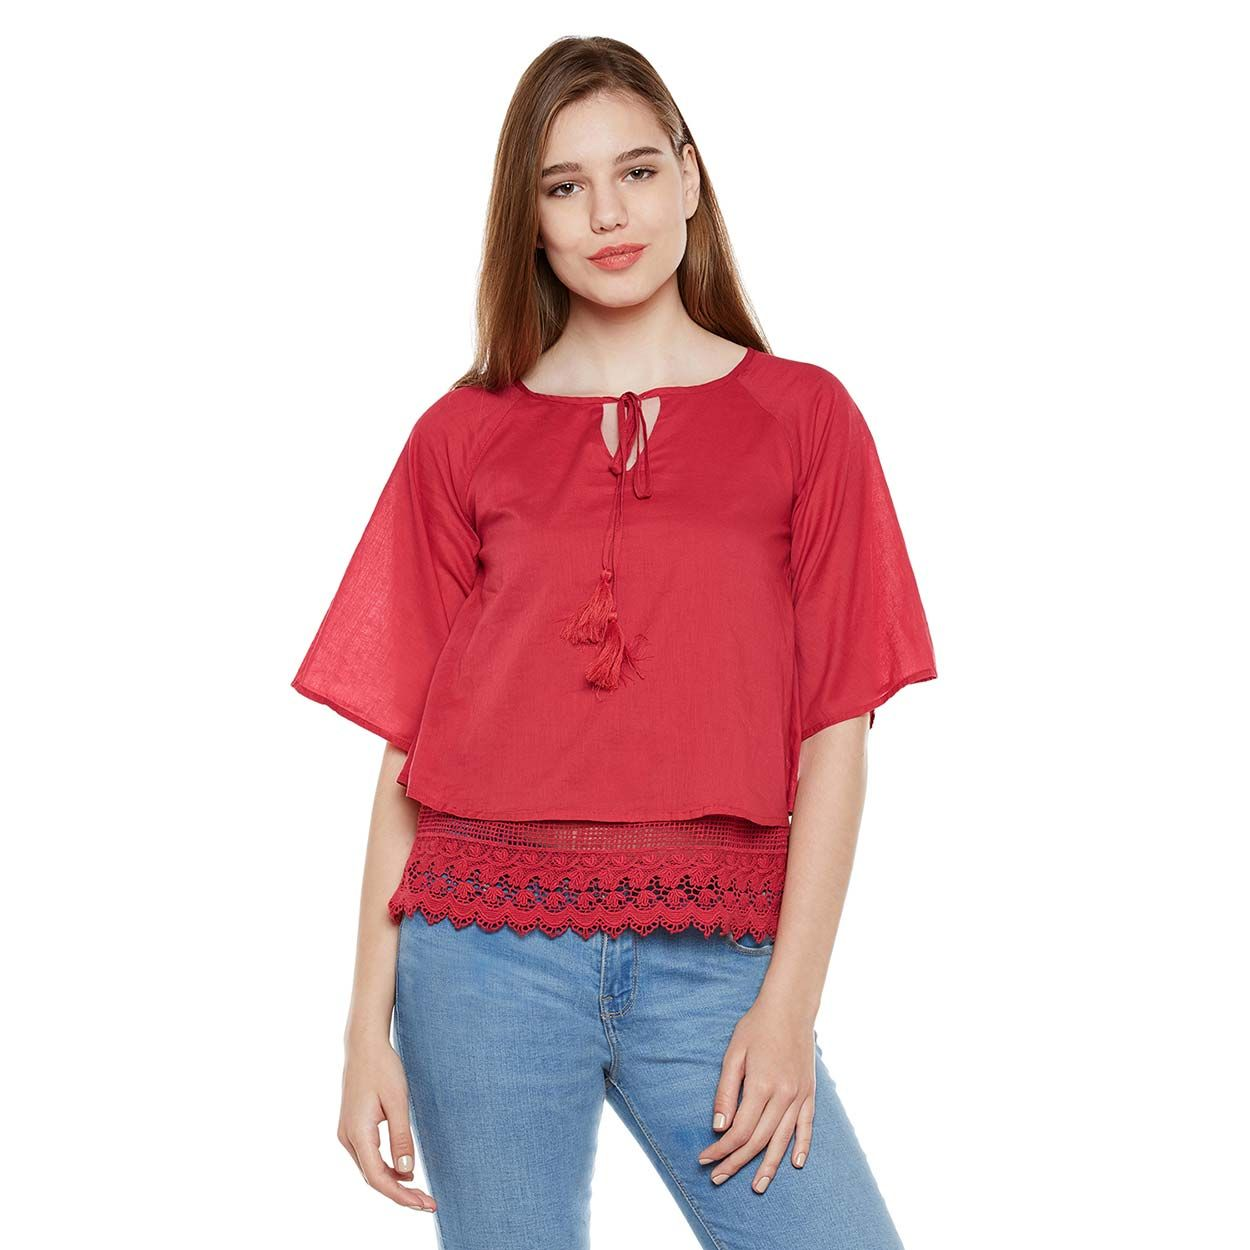 Red Lace Top With Tussles | W17056wbl004